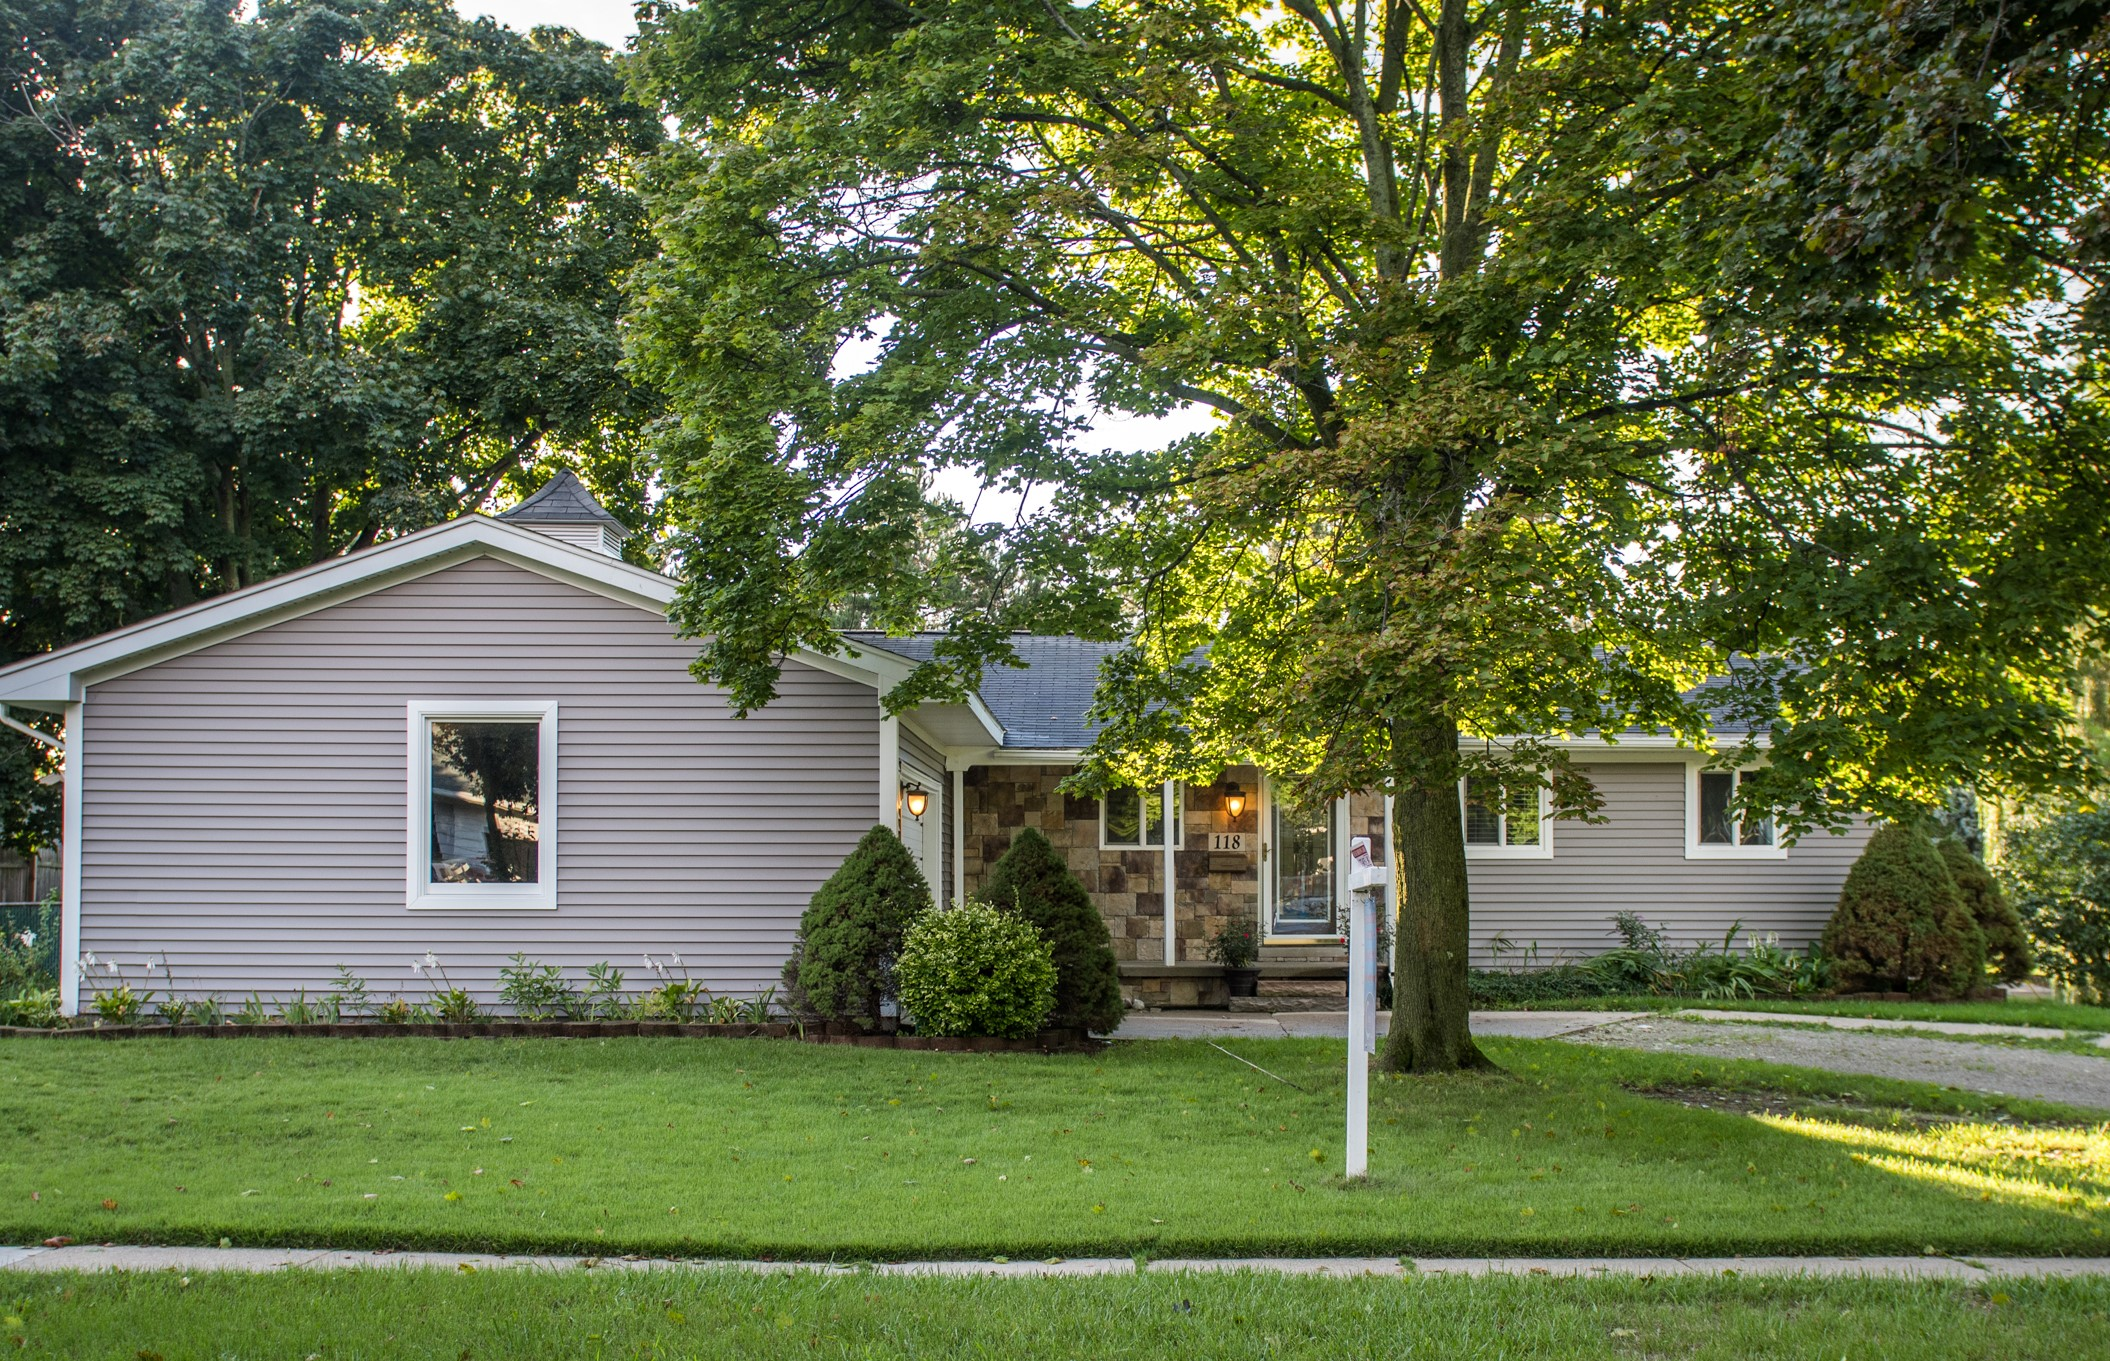 Browning- Howell - $190,000   DOM 14 / Sold for $1,000 over asking price / 23 Showings